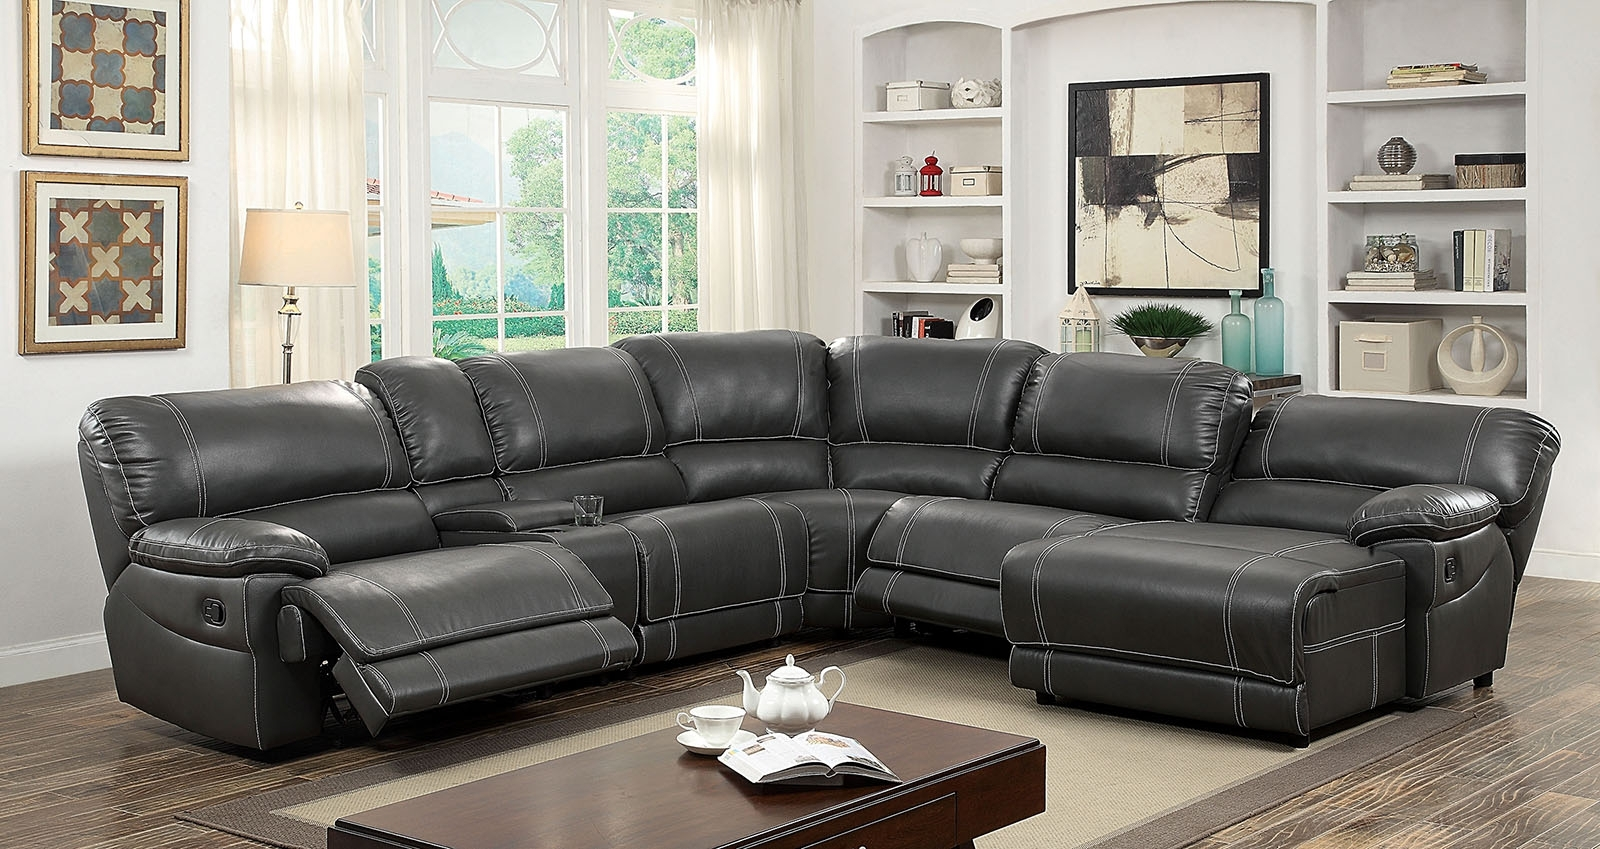 Furniture Of America 6131Gy Gray Reclining Chaise Console With Fashionable Chaise Sectional Sofas (View 12 of 15)